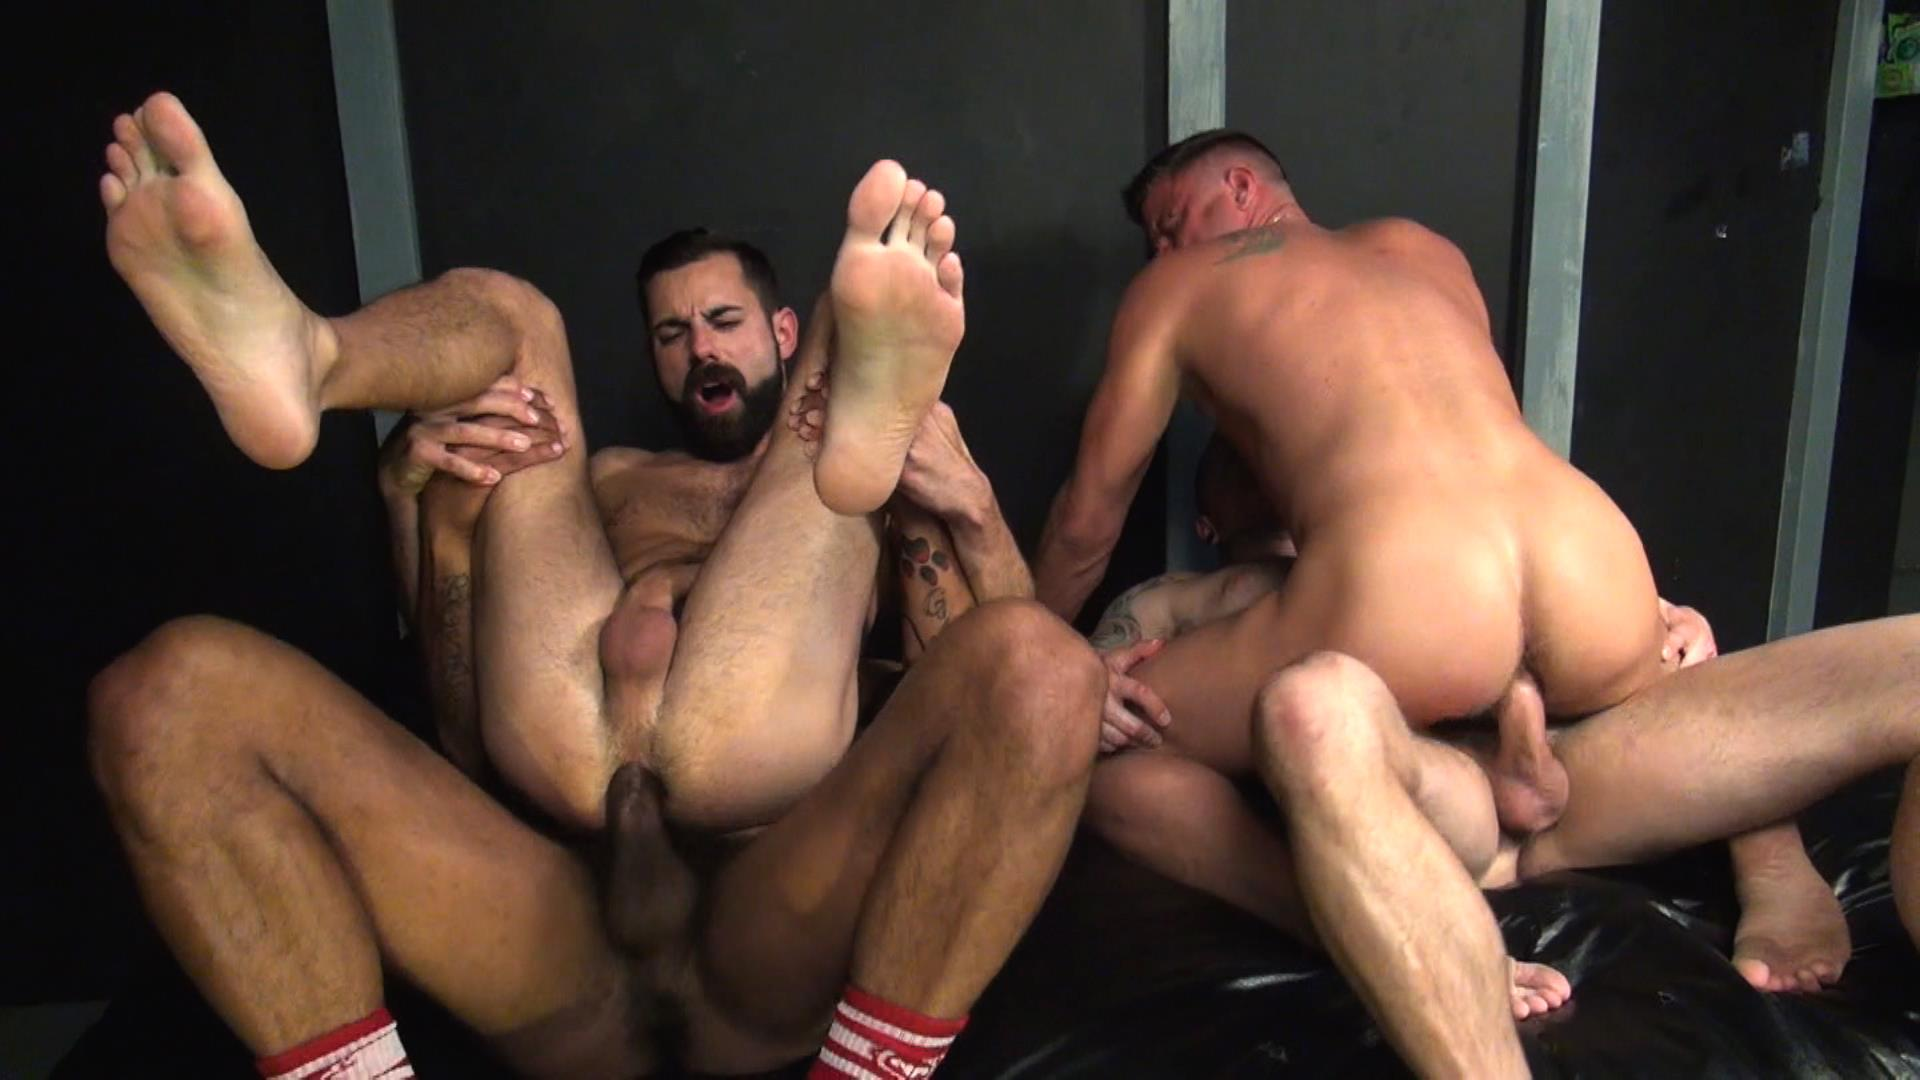 Lustful Gay Guys Fucking In Group Sex